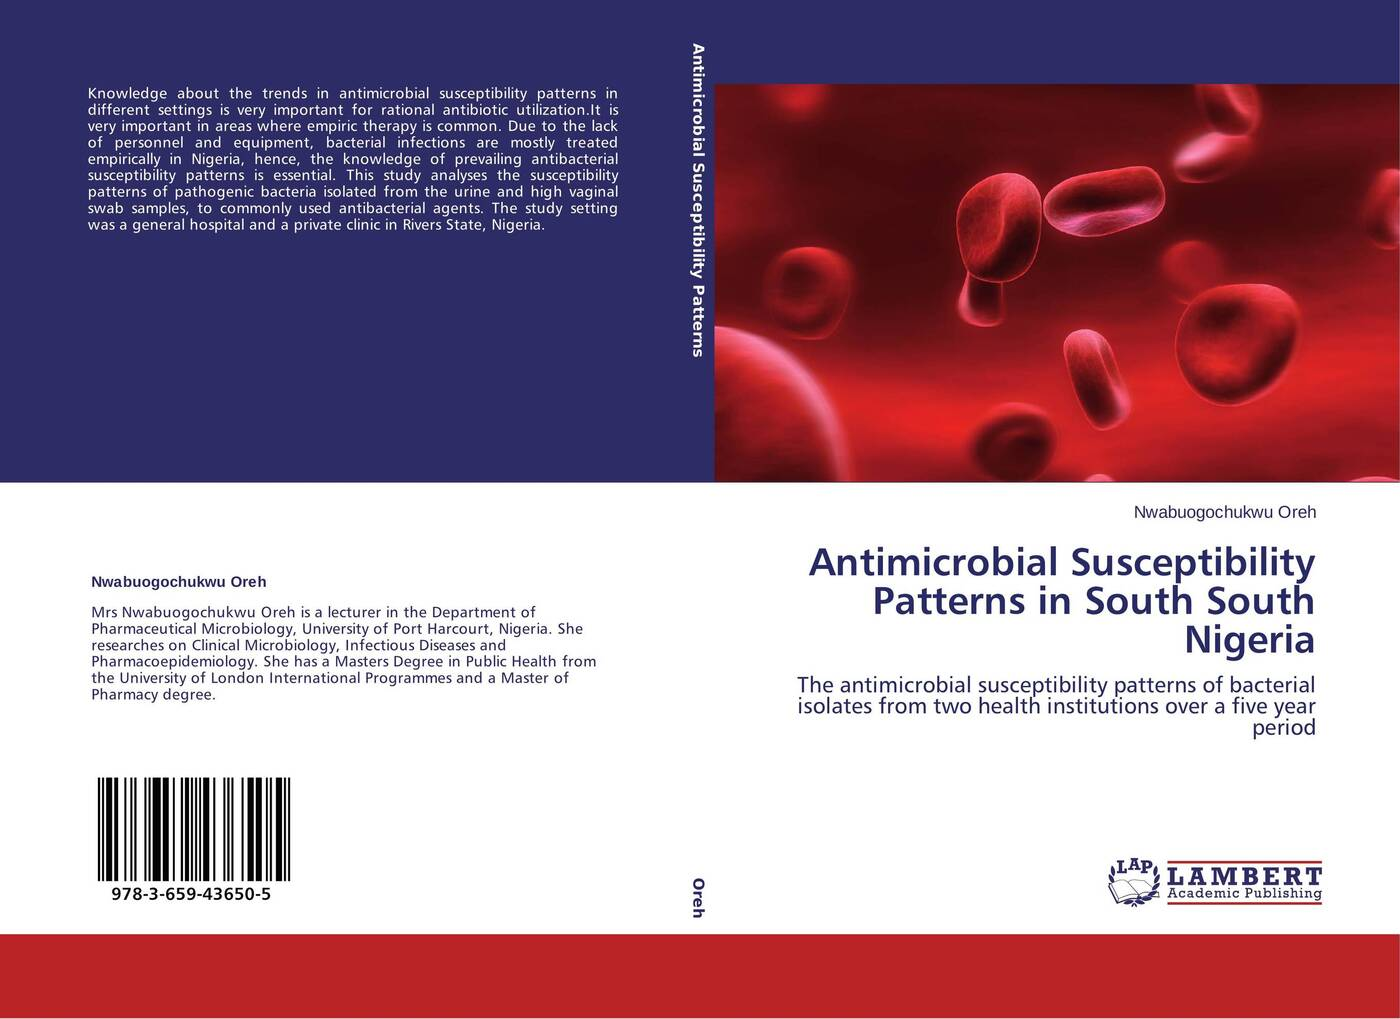 Nwabuogochukwu Oreh Antimicrobial Susceptibility Patterns in South South Nigeria handbook of antibacterial agents